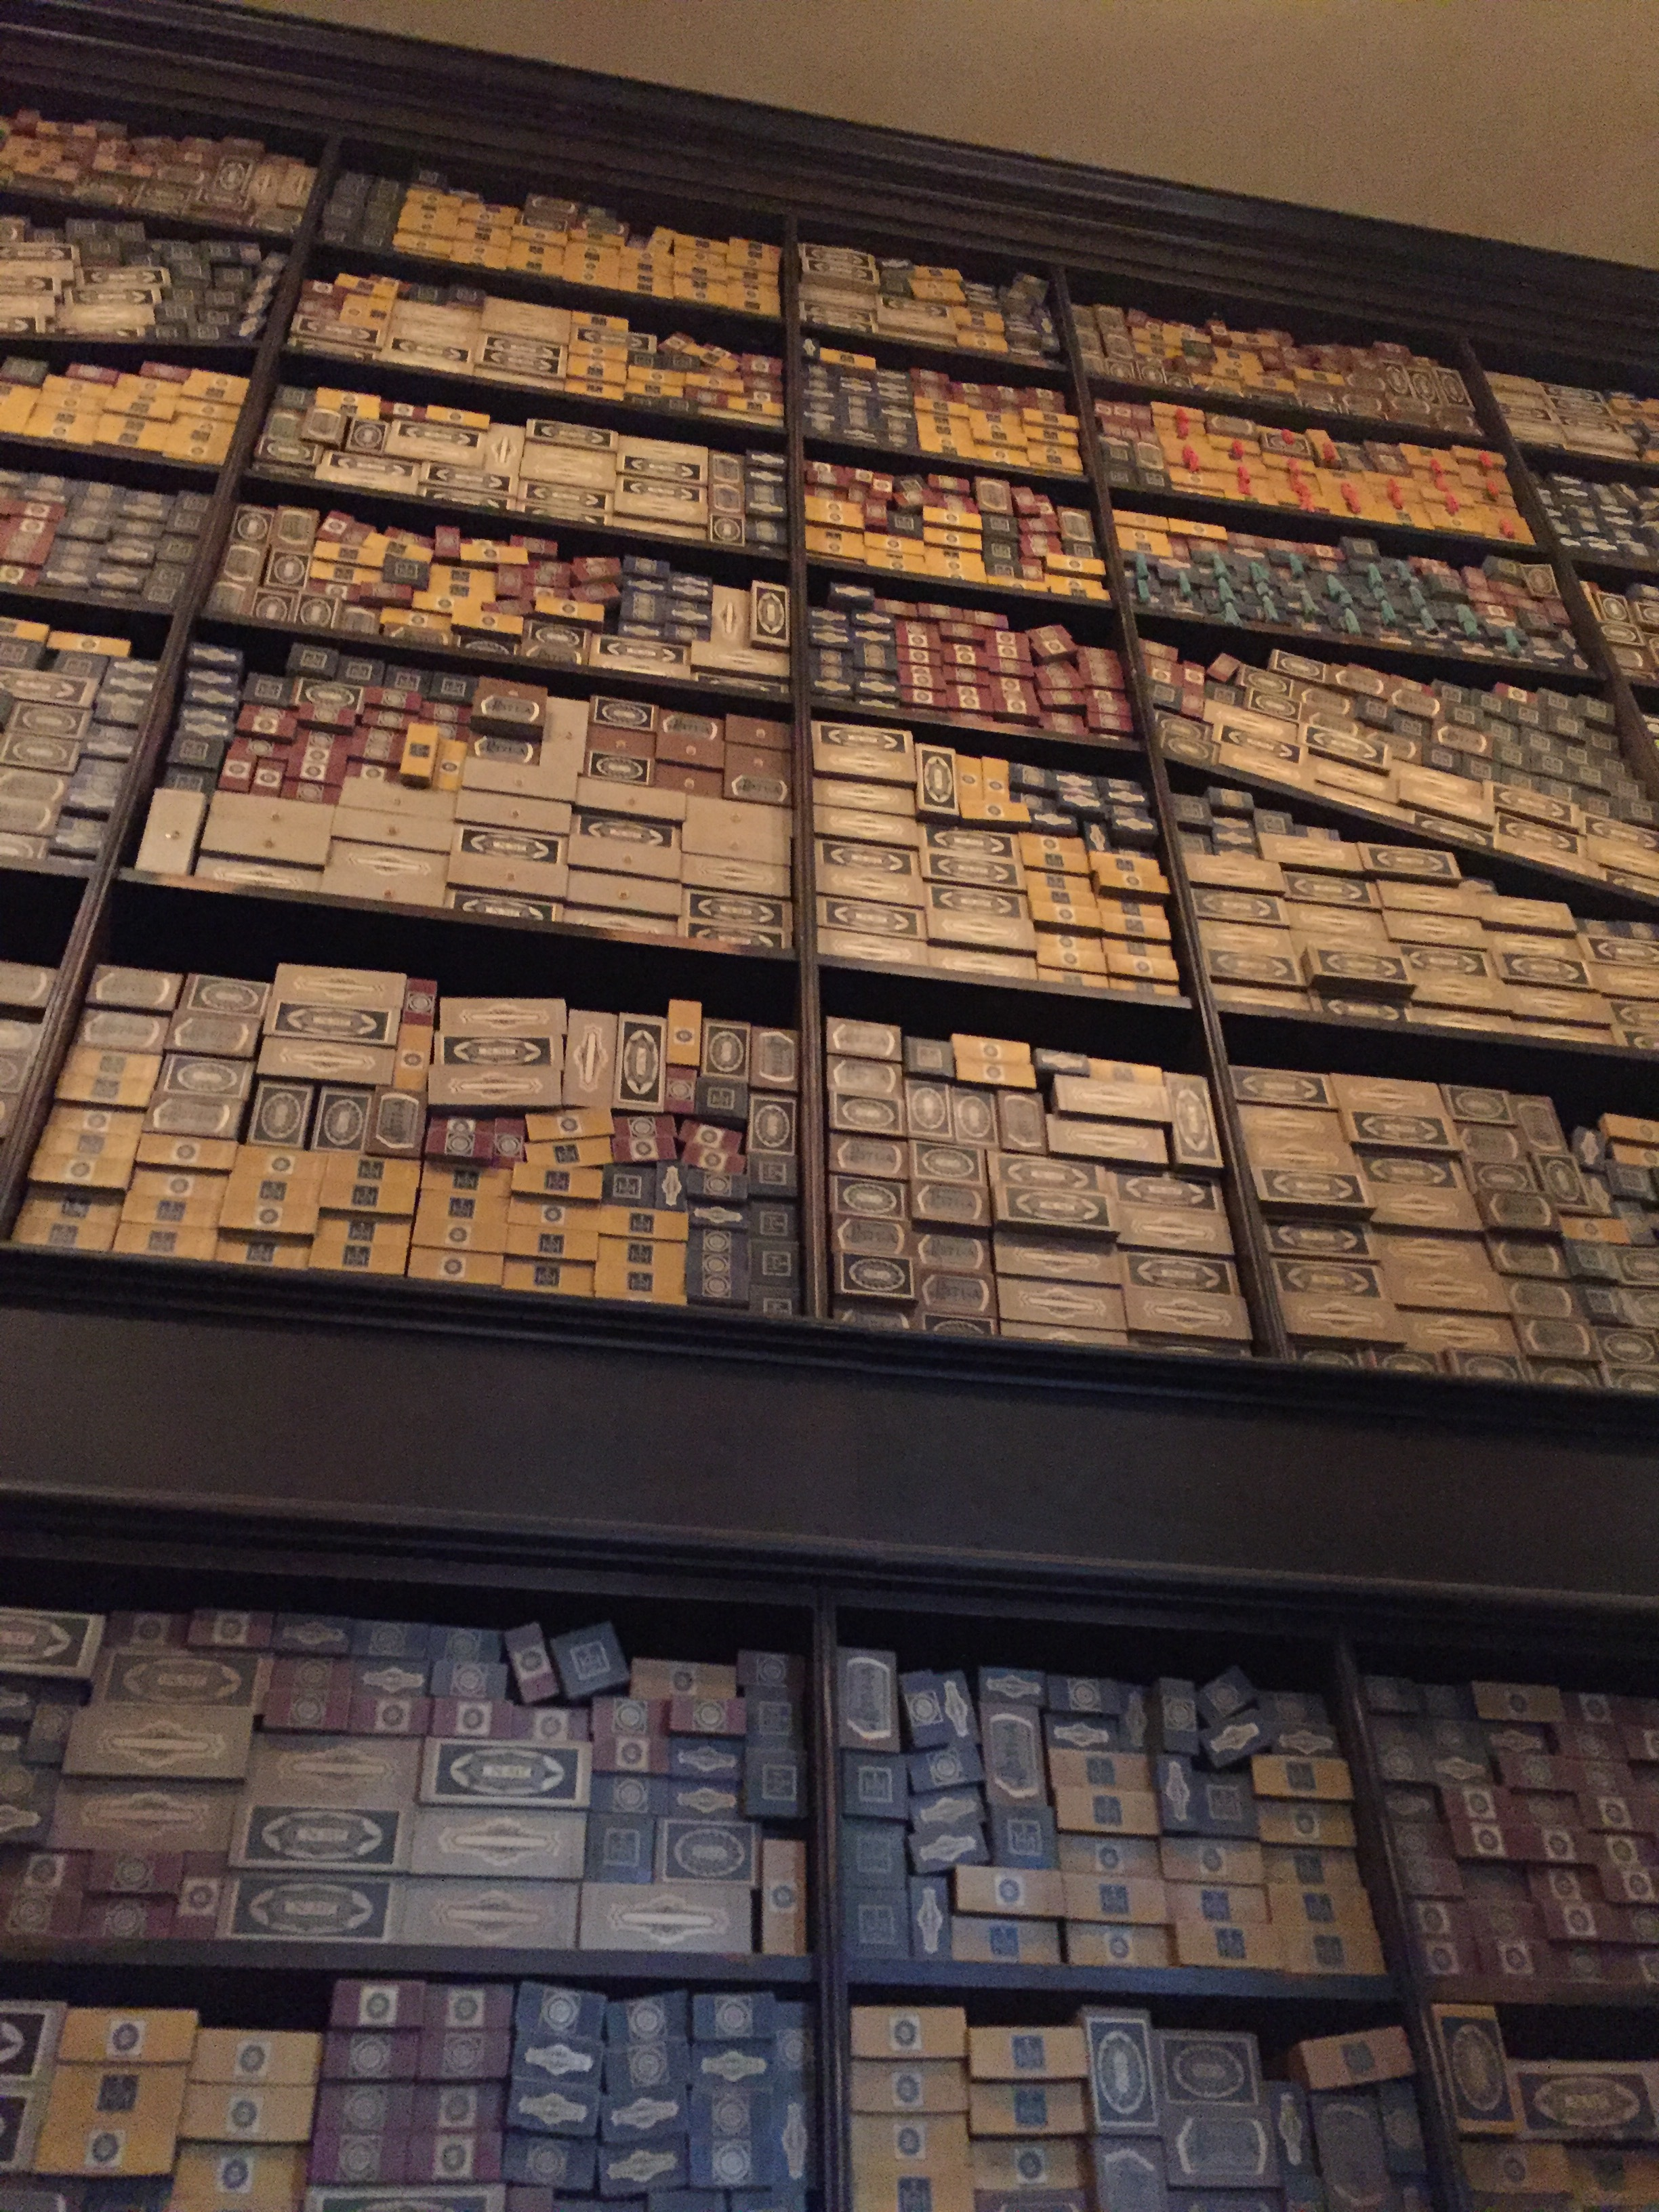 [image description: Inside Ollivander's Wand Shop, there are several walls that are packed floor to ceiling with wand boxes. The wand boxes are long and thin and the boxes are red, yellow, blue, gray, and brown. They all have labels and stickers to seal them, though they're too small for me to read, so I don't know what they say. Sorry!]